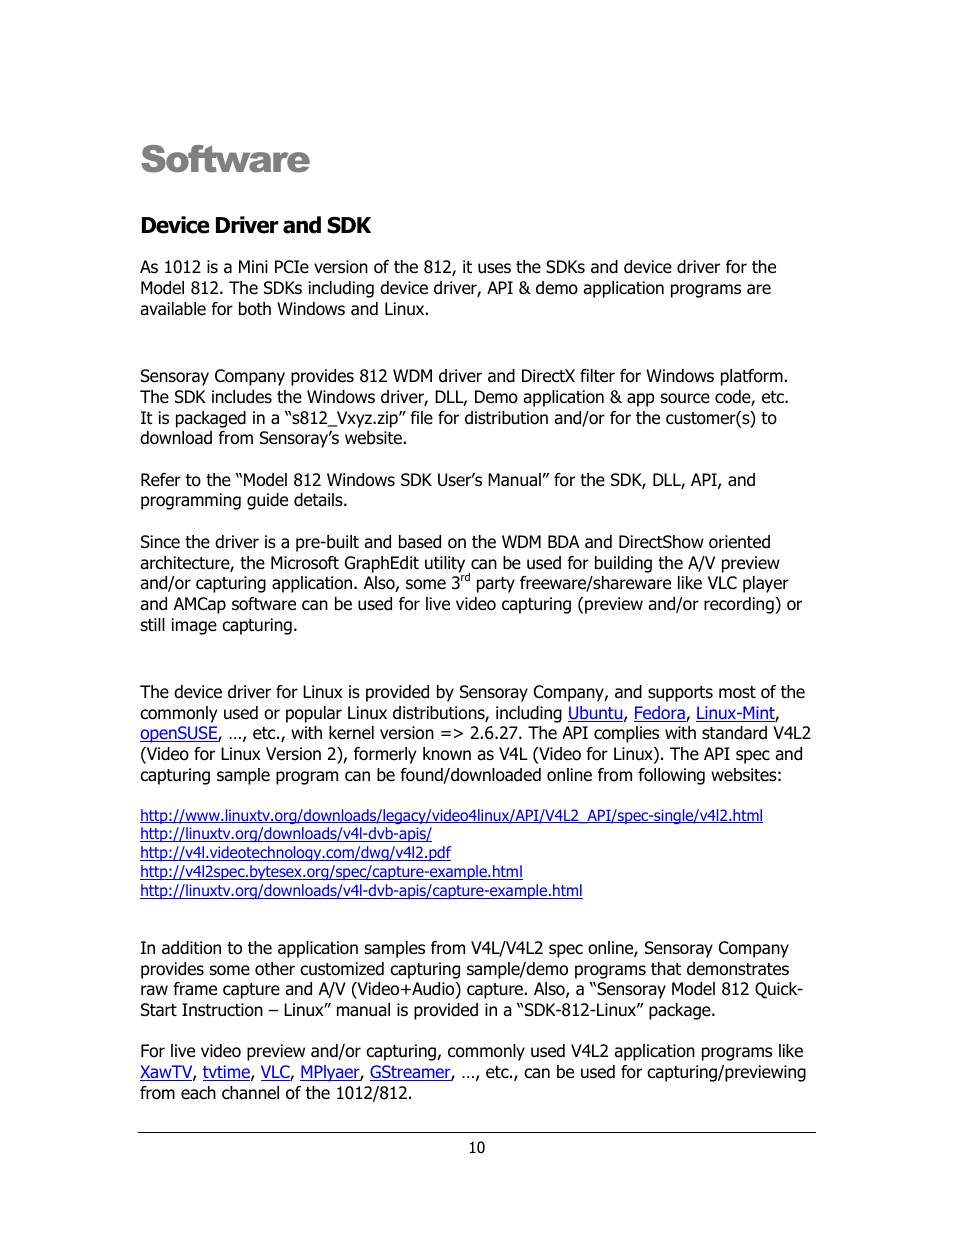 Software, Device driver and sdk | Sensoray 1012 User Manual